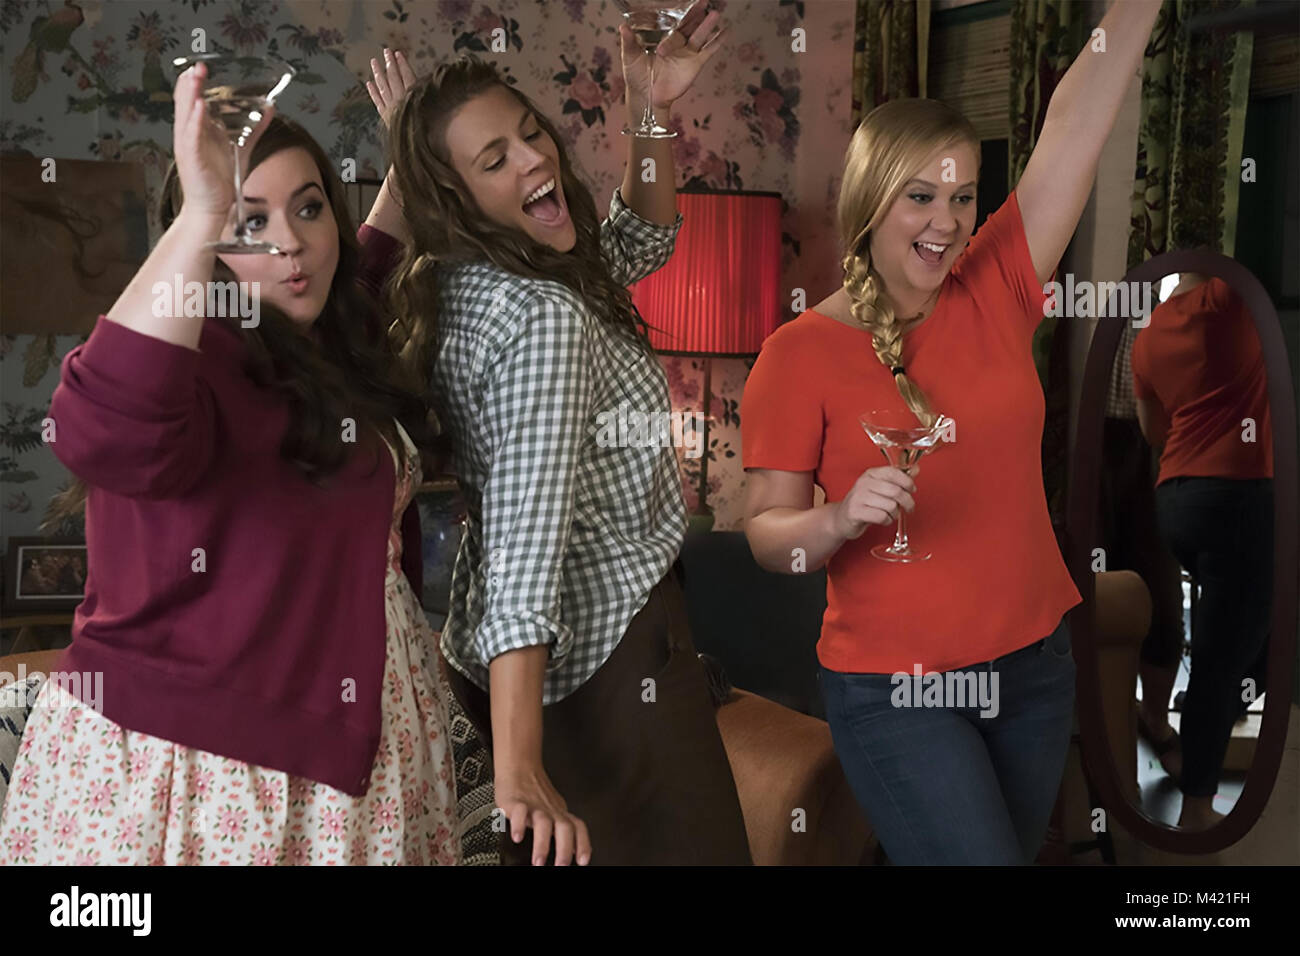 I FEEL PRETTY 2018 Voltage Pictures film with from left: Amy Schumer, Aidy Bryant, Busy Philipps - Stock Image